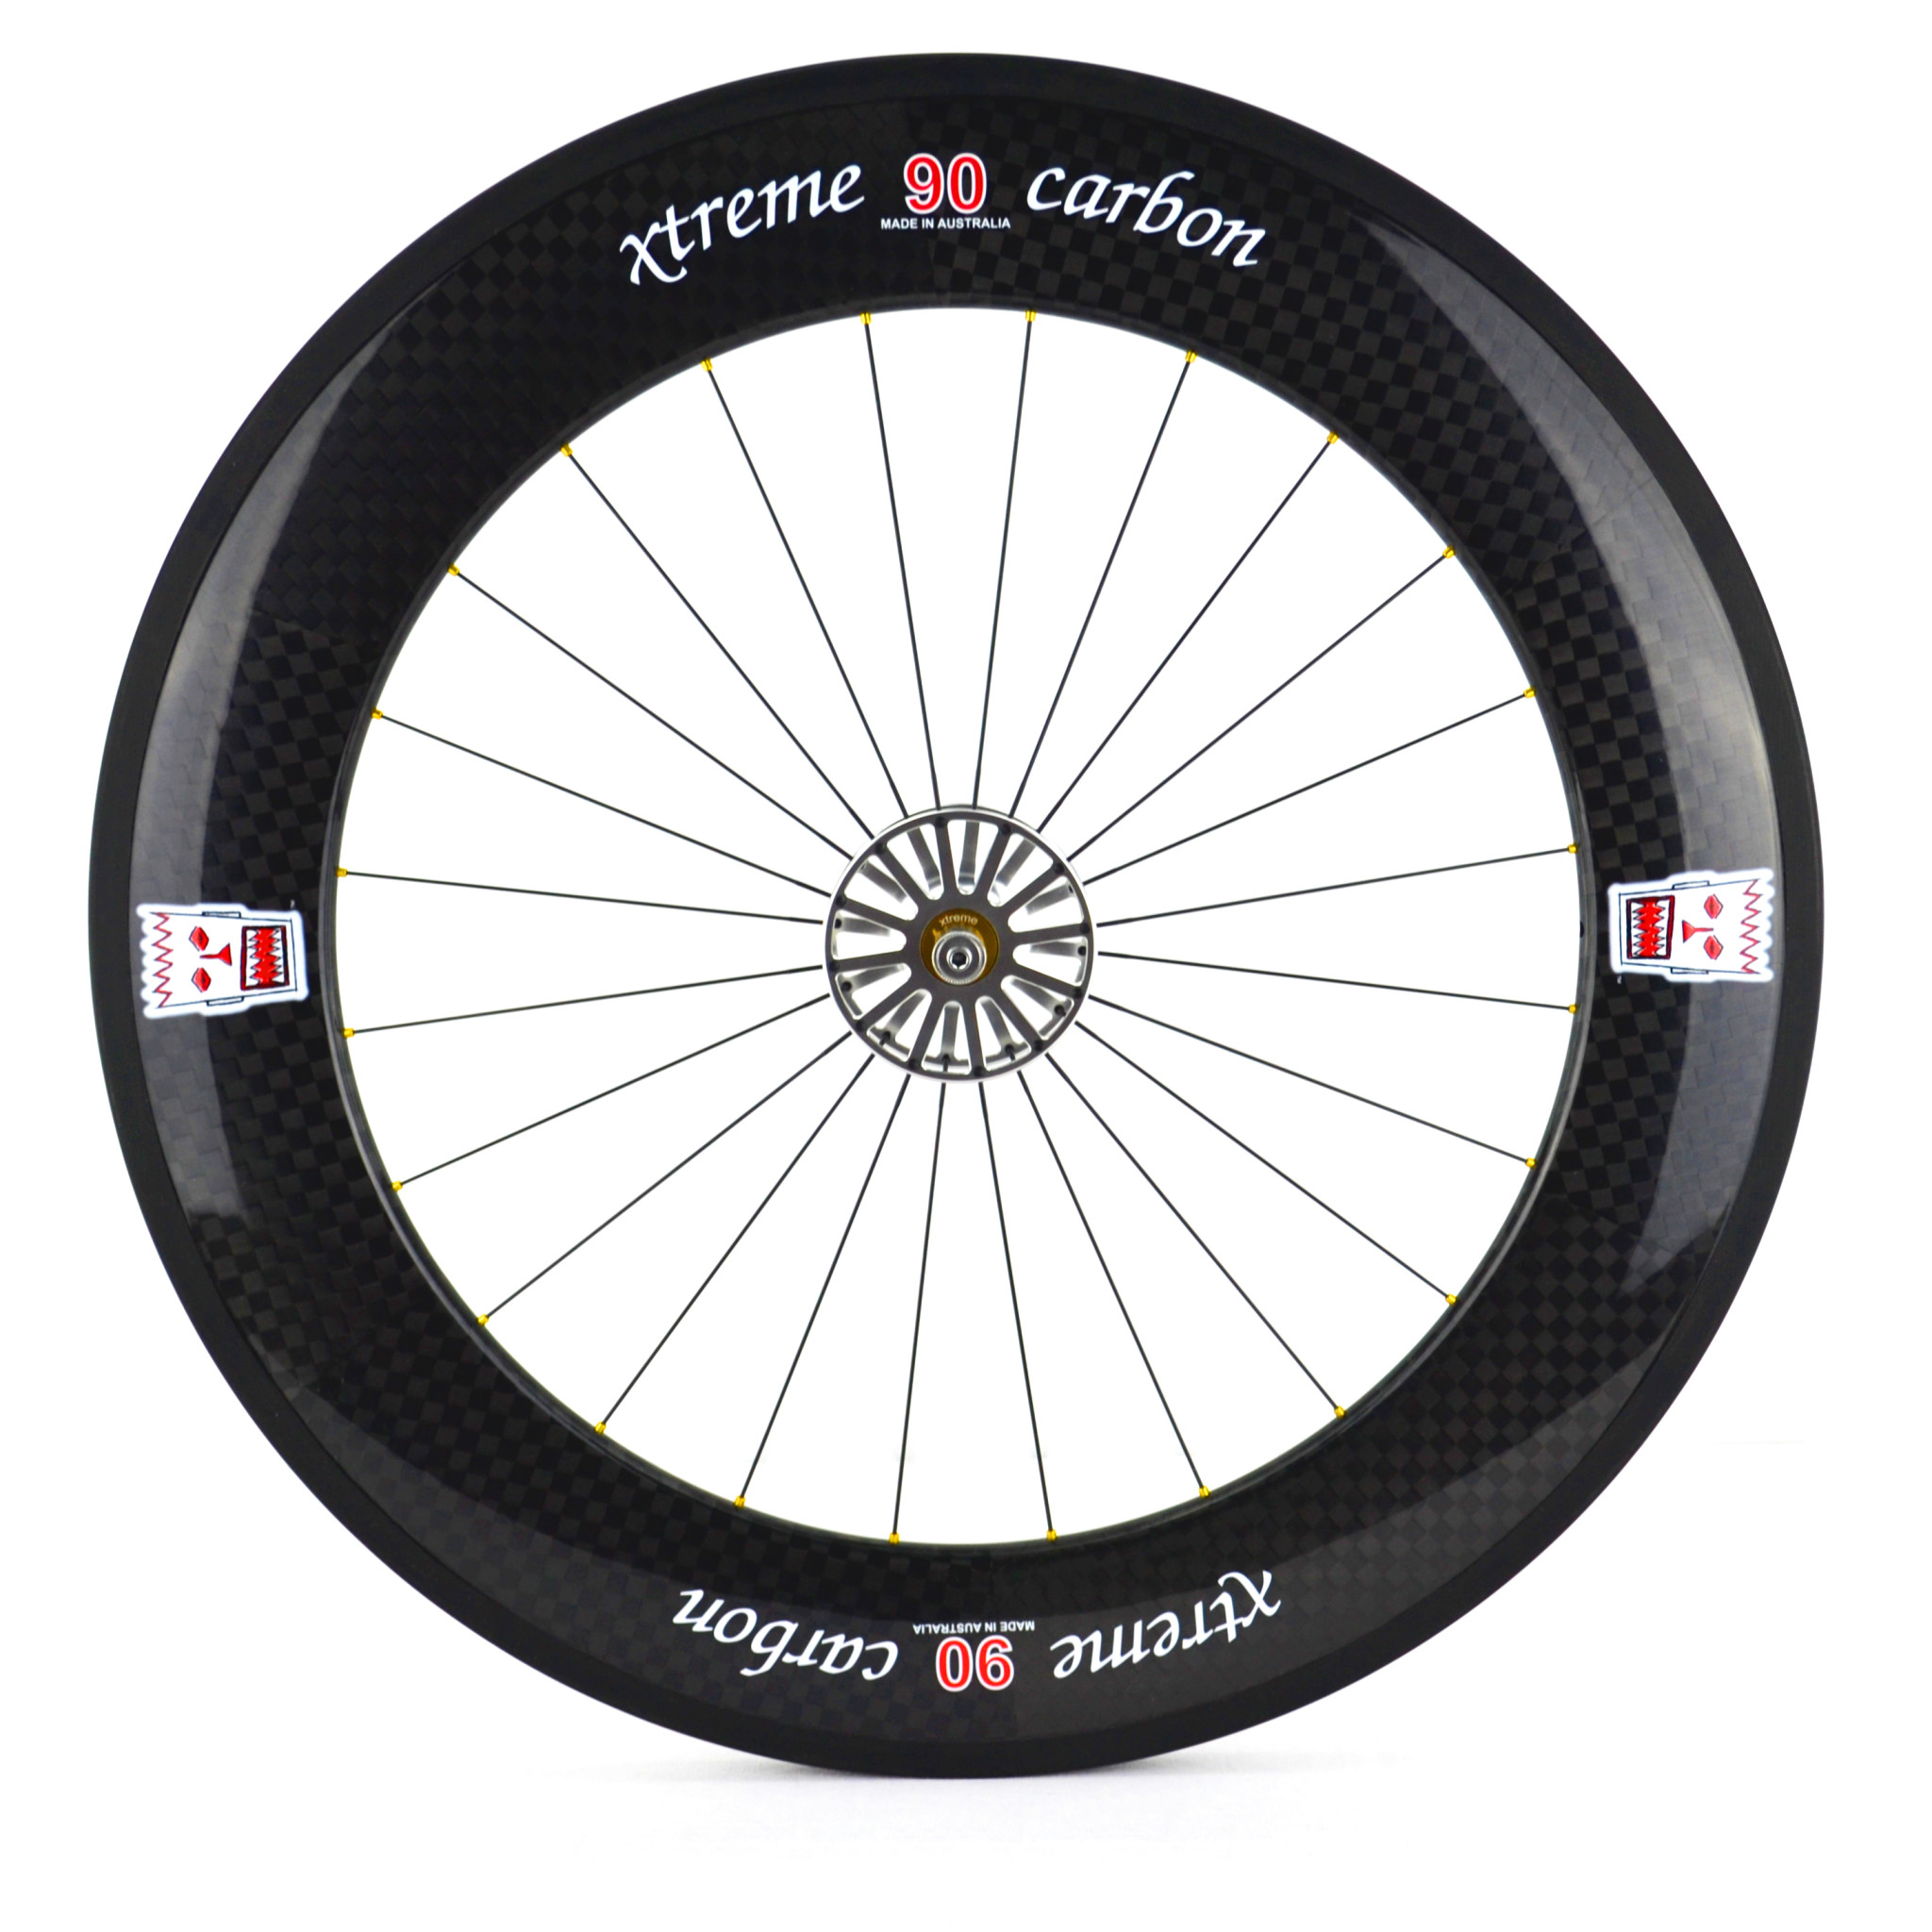 90 race grade carbon race wheel